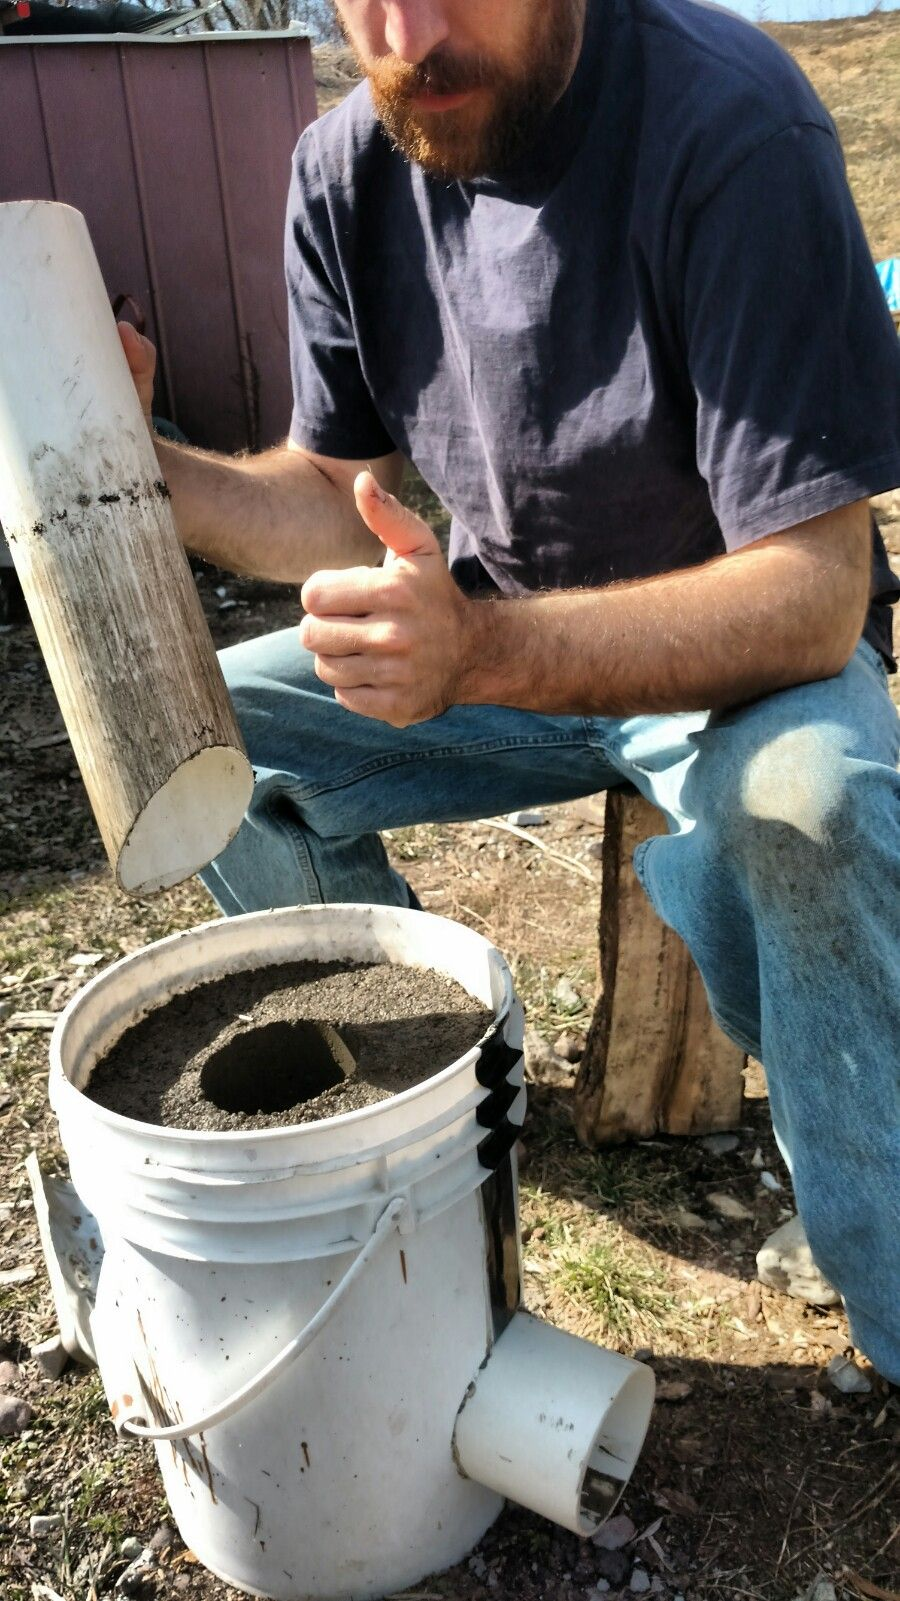 DIY: A $10 Indestructible Off-Grid Cooking Stove